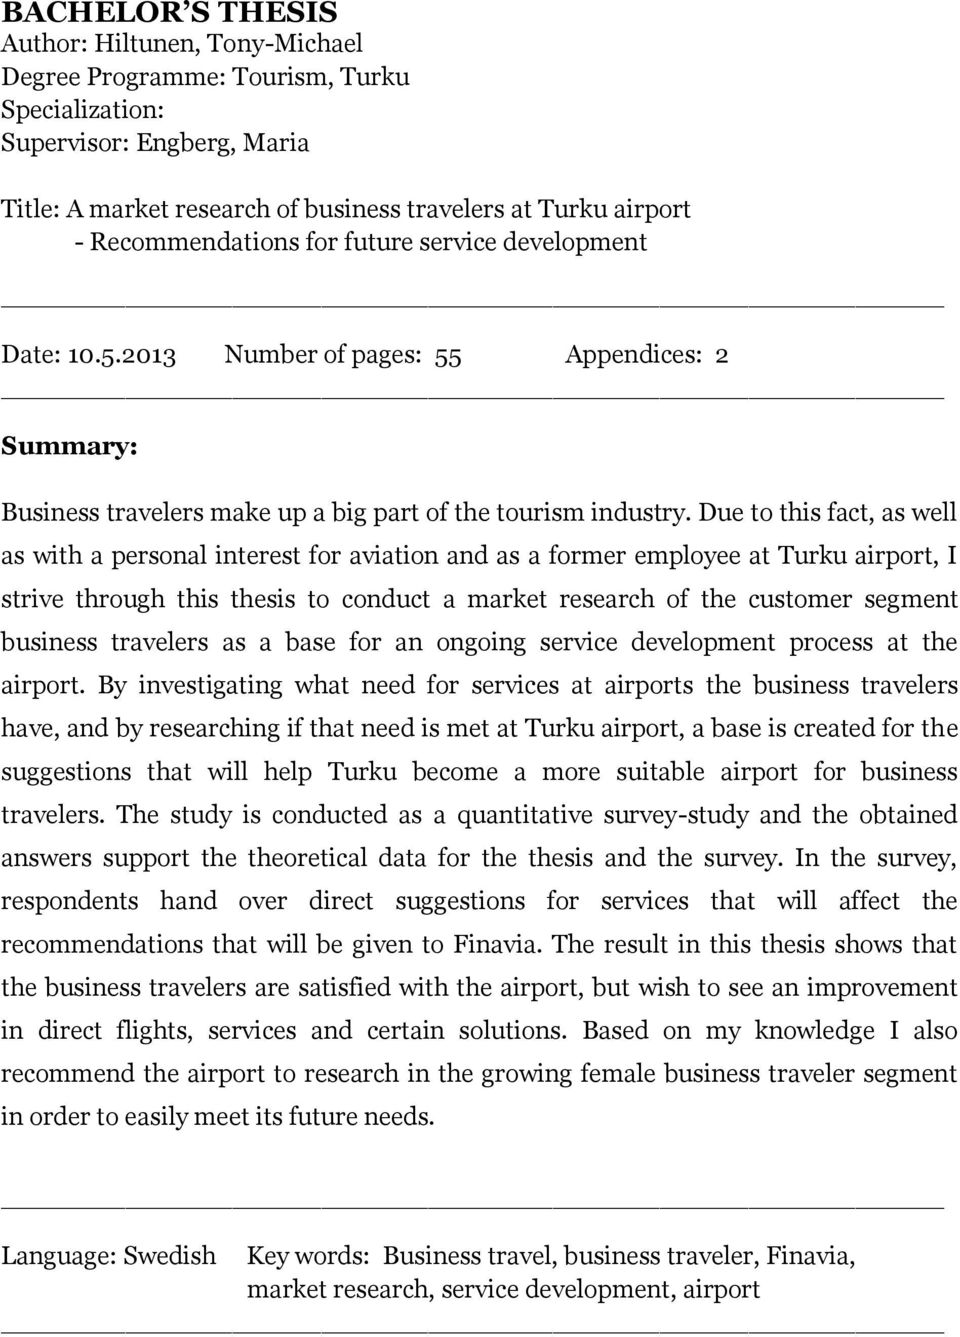 Due to this fact, as well as with a personal interest for aviation and as a former employee at Turku airport, I strive through this thesis to conduct a market research of the customer segment